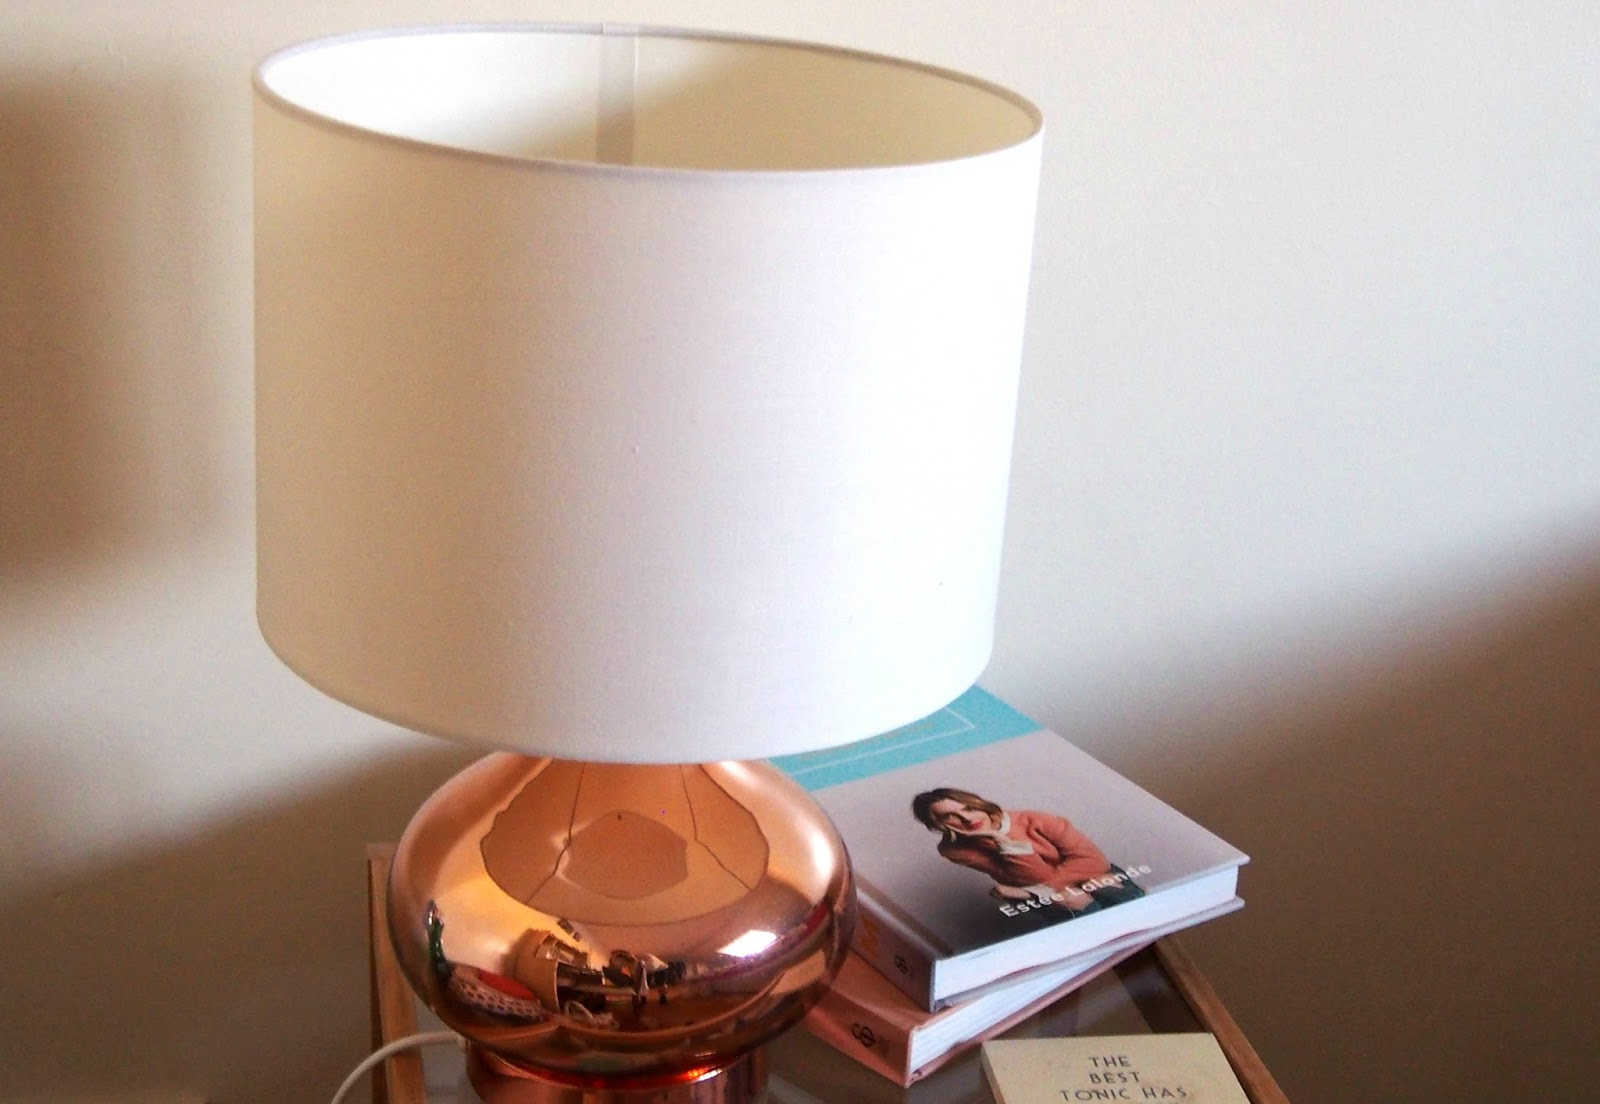 Bedside lamp on table